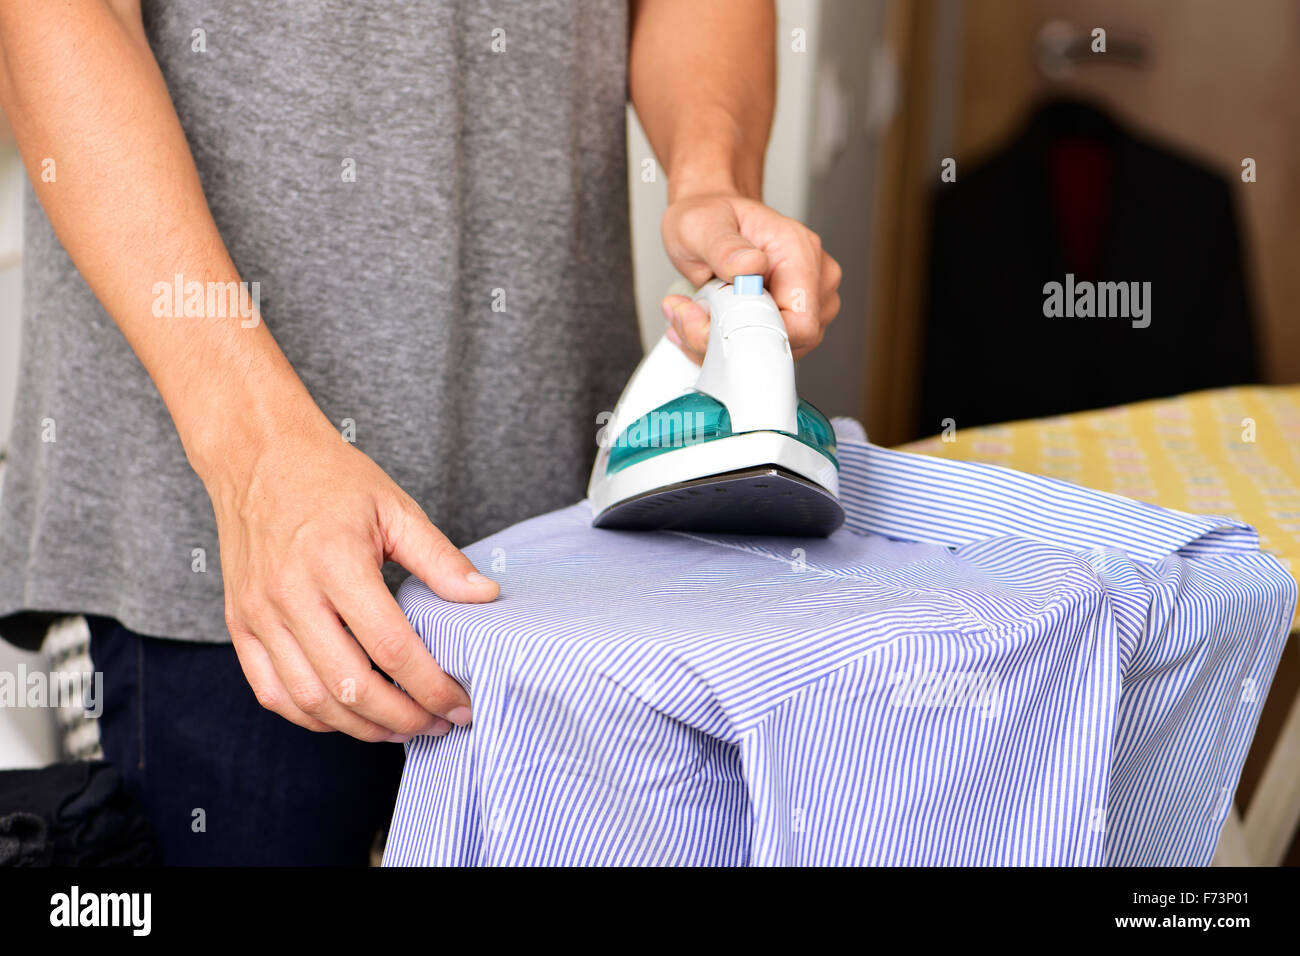 closeup of a young man ironing a striped shirt with an electric iron - Stock Image